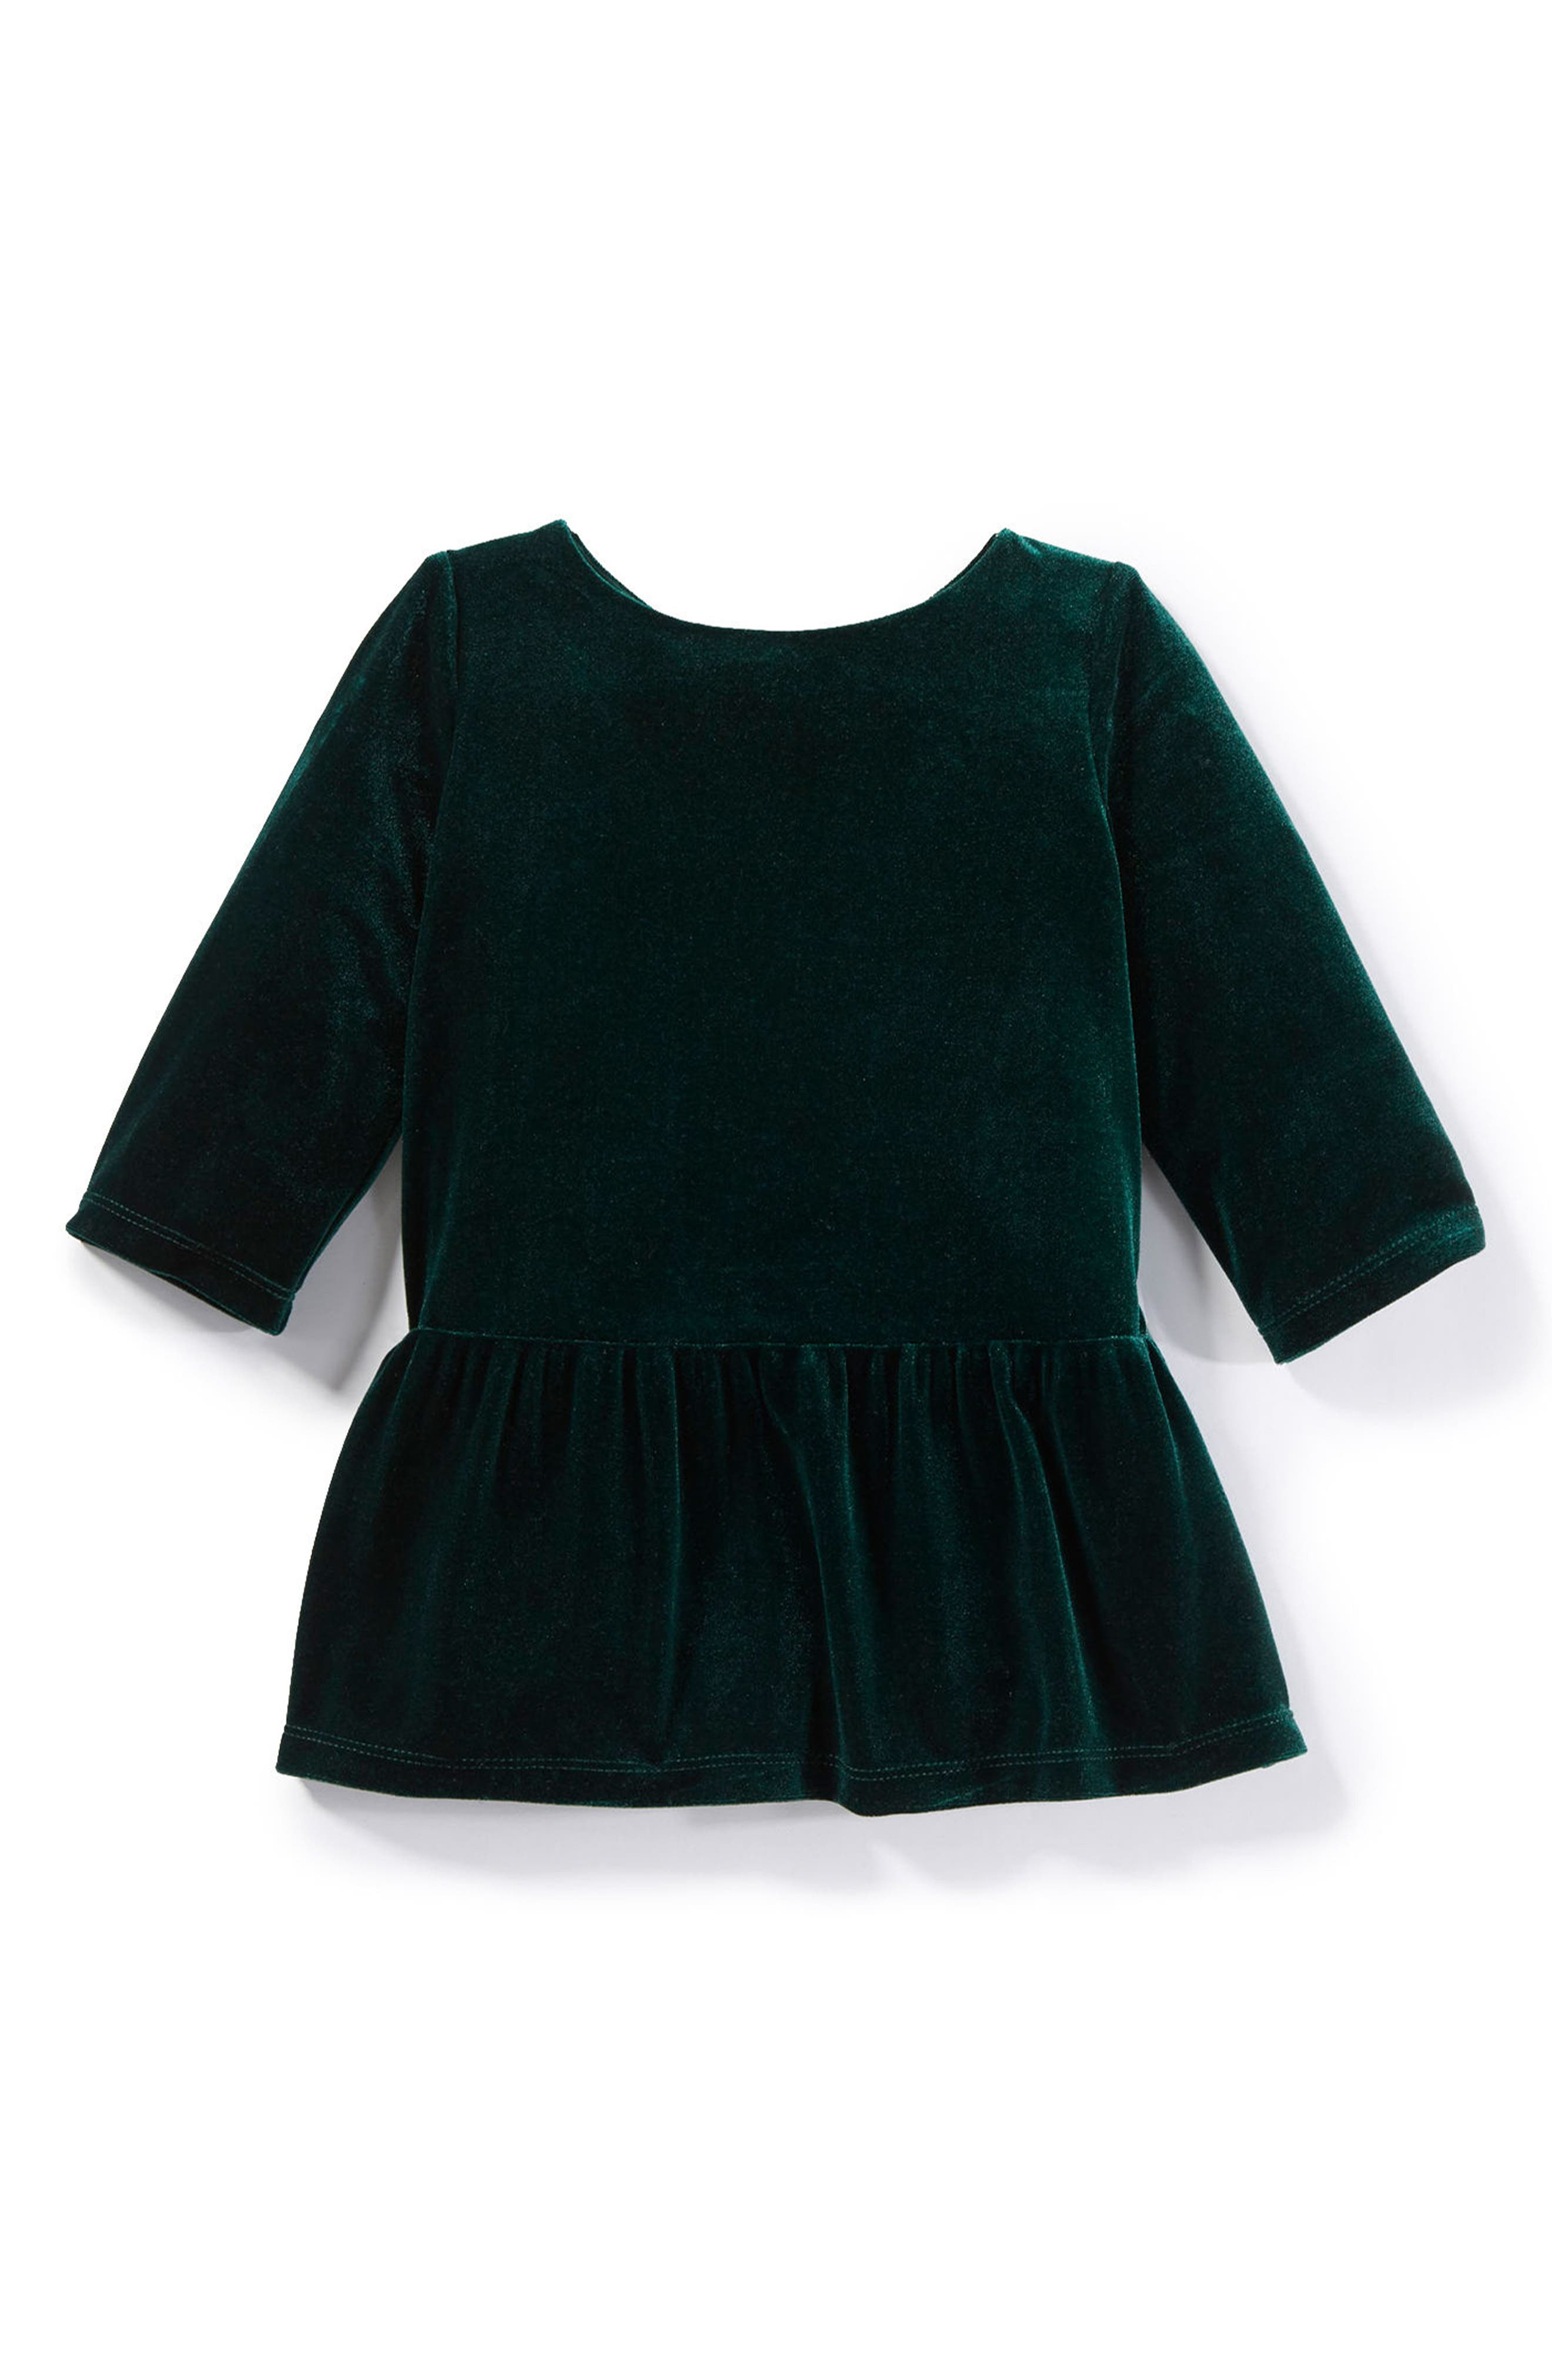 Angelina Velvet Dress,                             Main thumbnail 1, color,                             Green